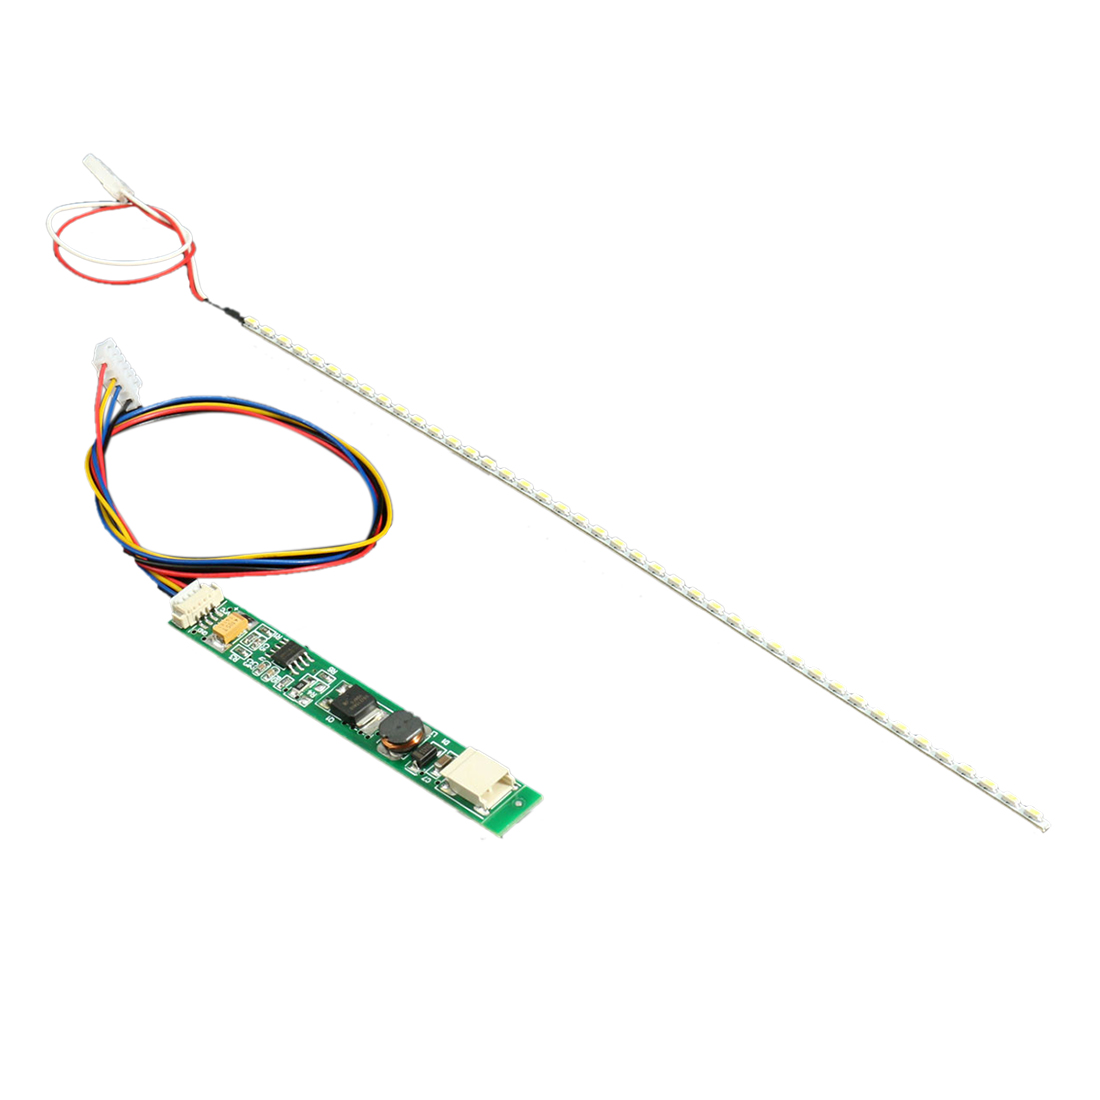 220mm LED Backlight Strip Kit Update 10.4 inch CCFL LCD Screen To LED Monitor